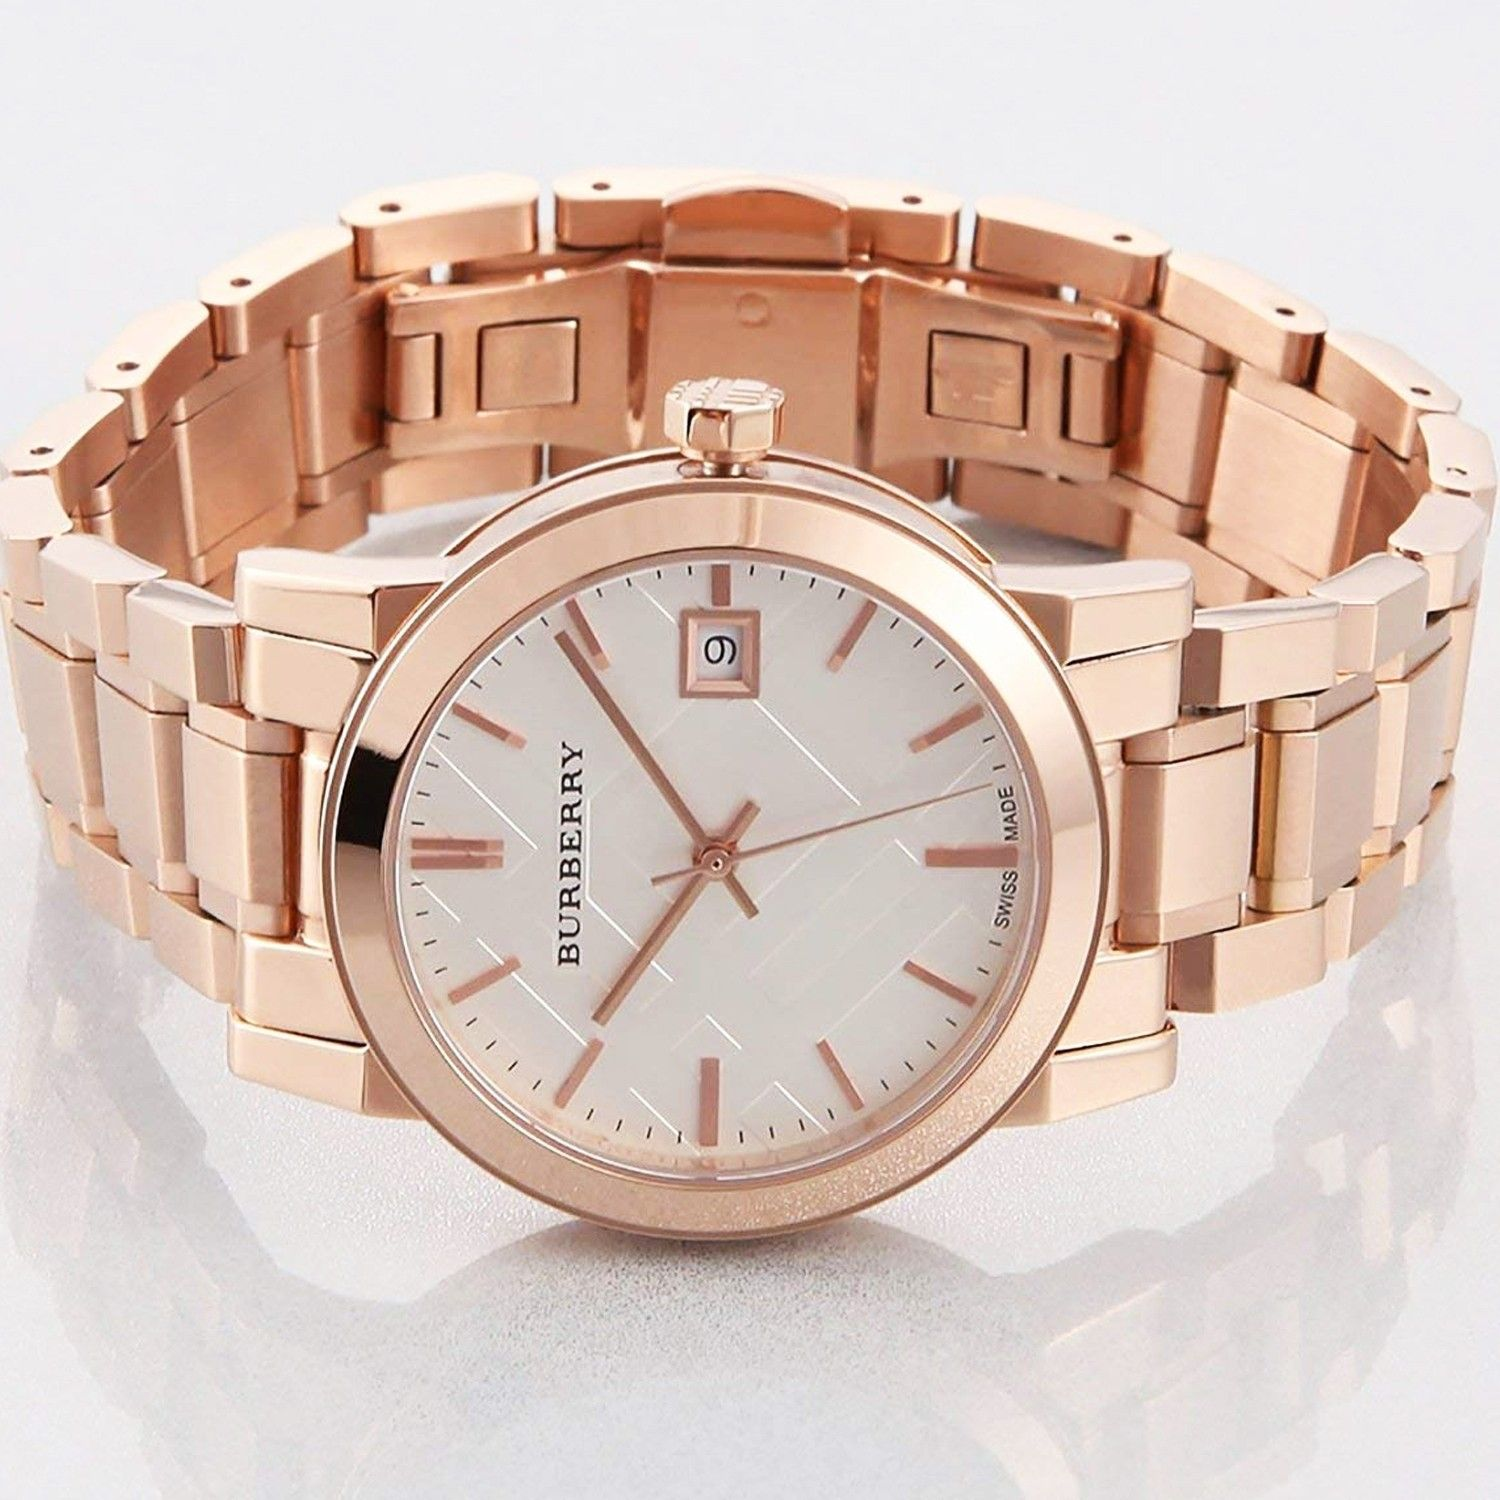 Burberry Women's  Heritage Rose Gold-Plated Stainless Steel Watch